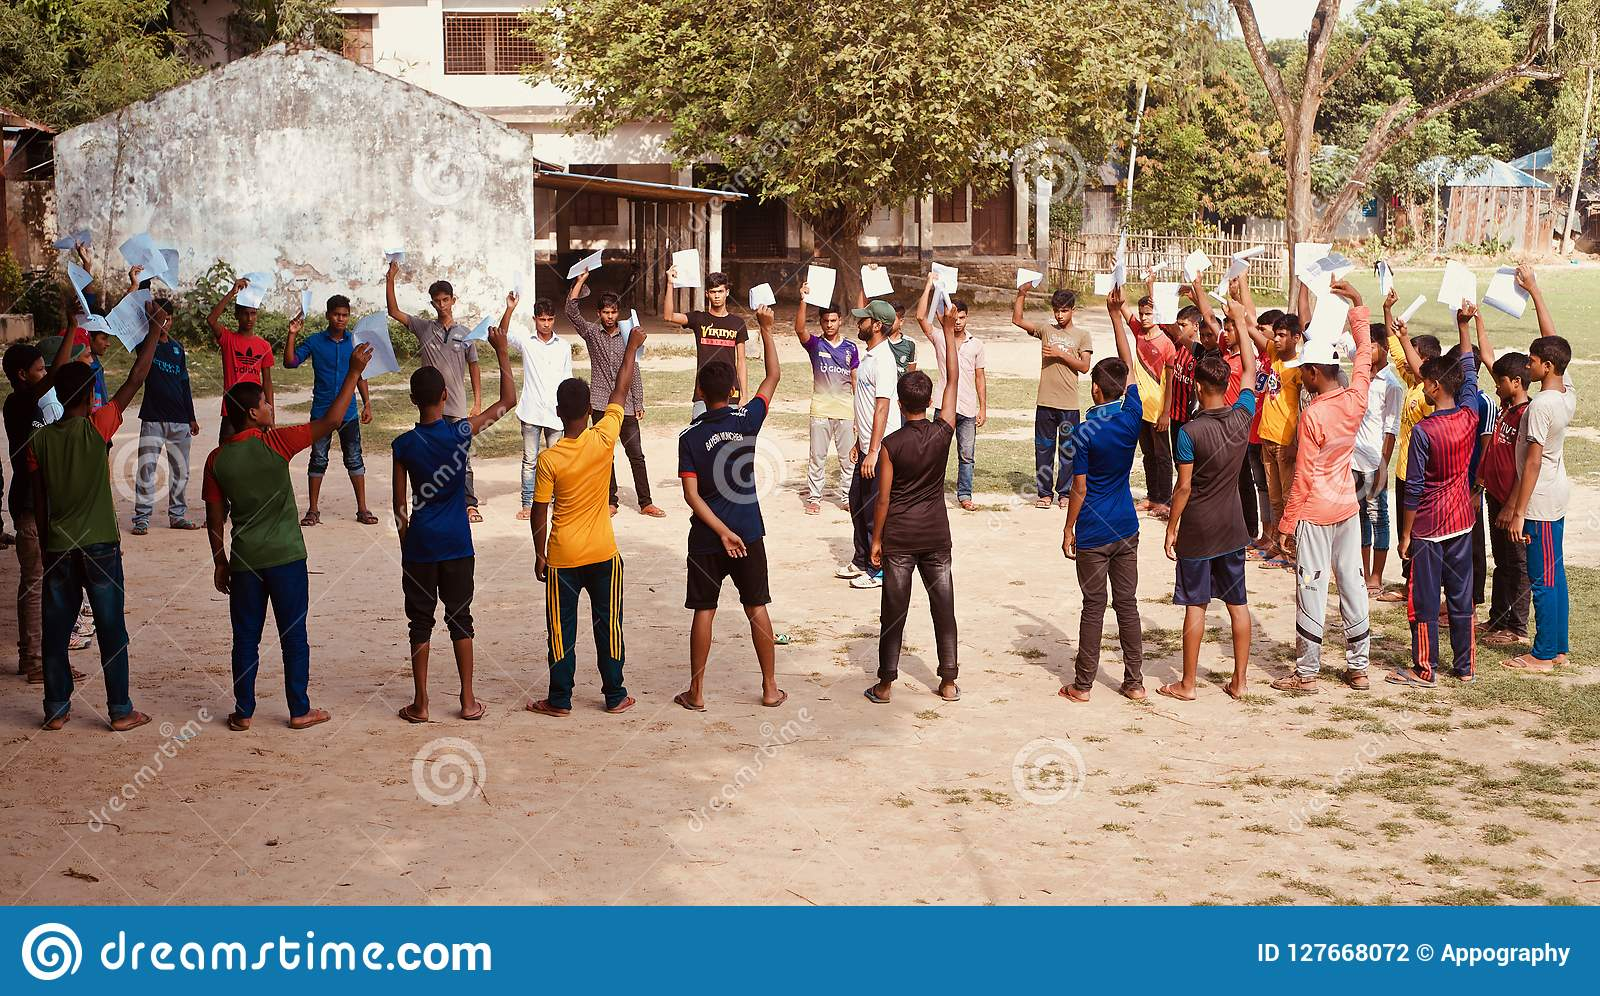 Young boys raising hands standing in a place unique photo